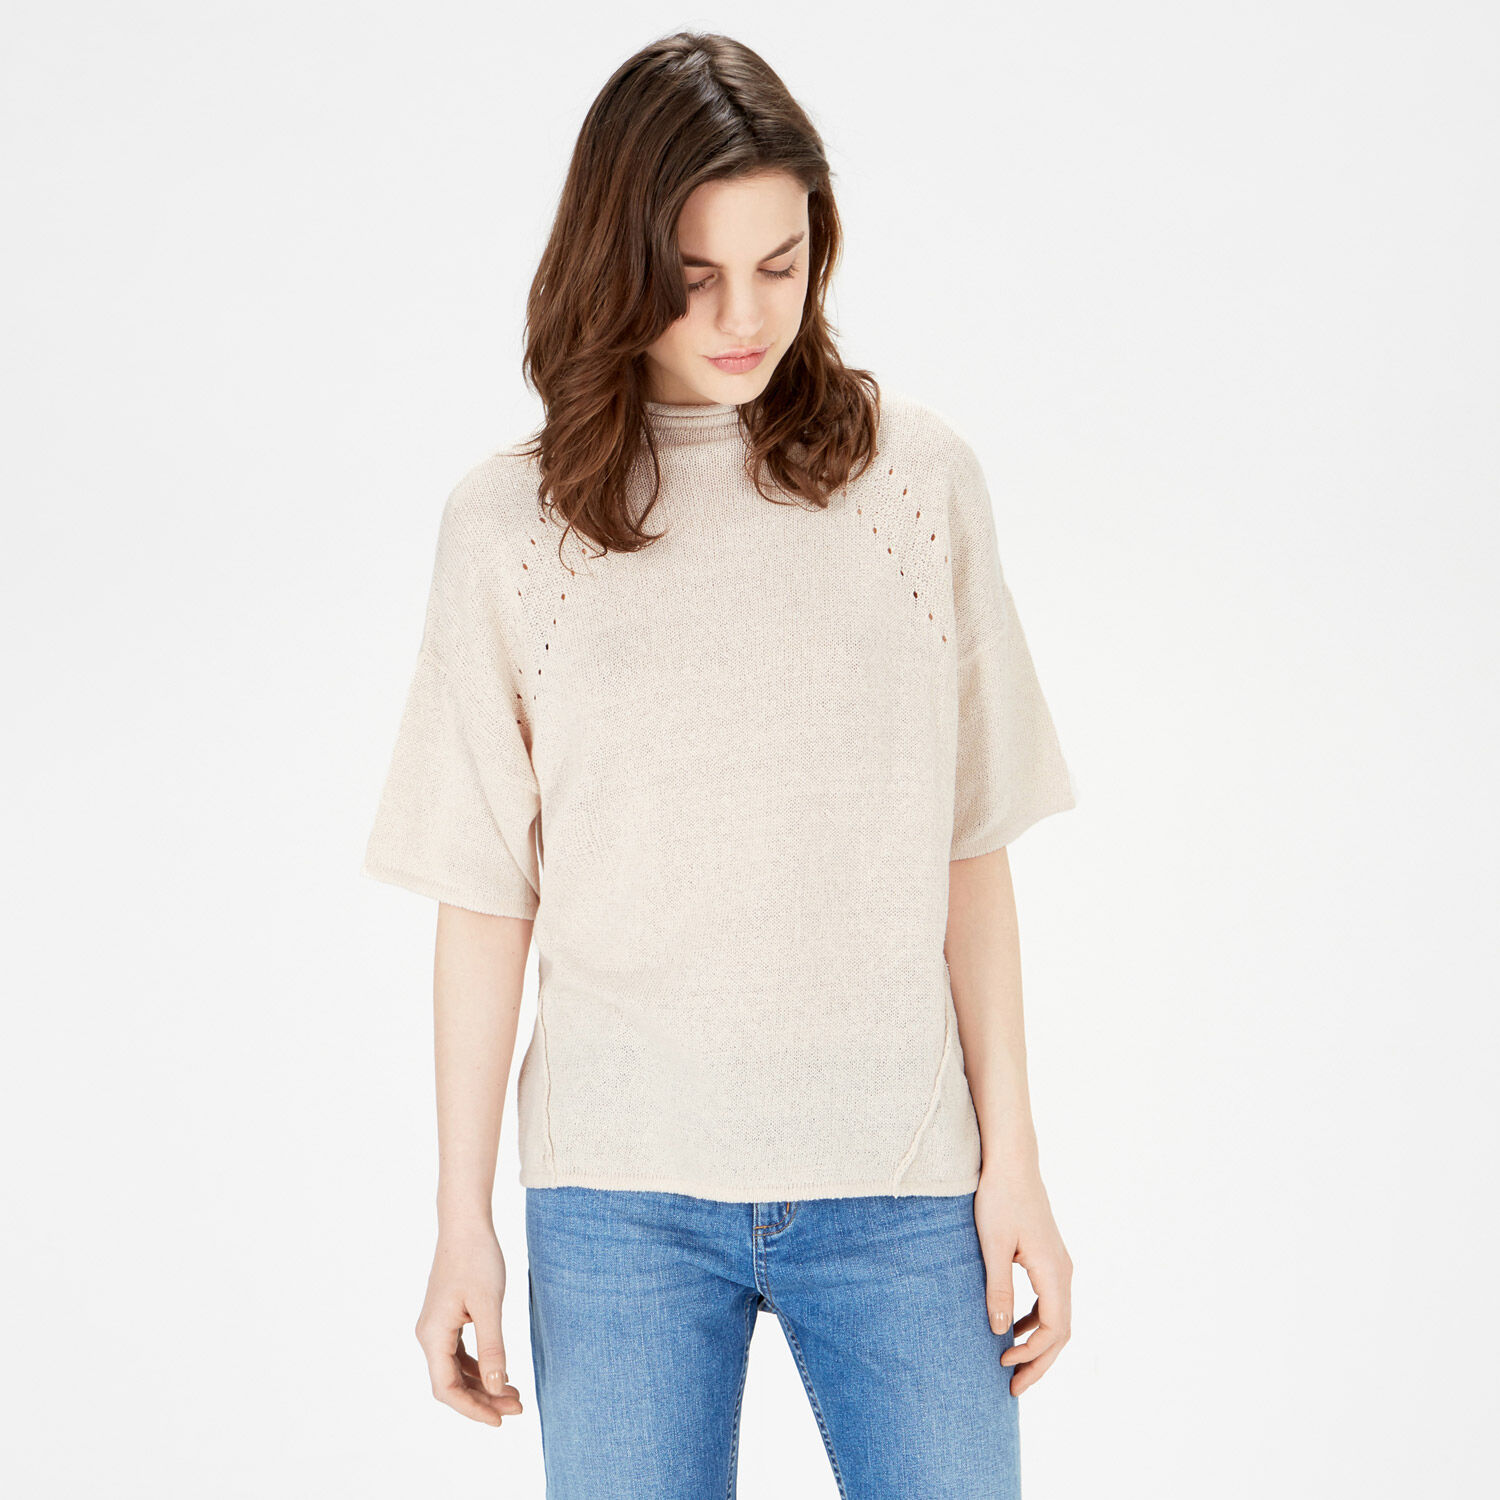 Warehouse, BOXY LINEN KNITTED TOP Cream 1